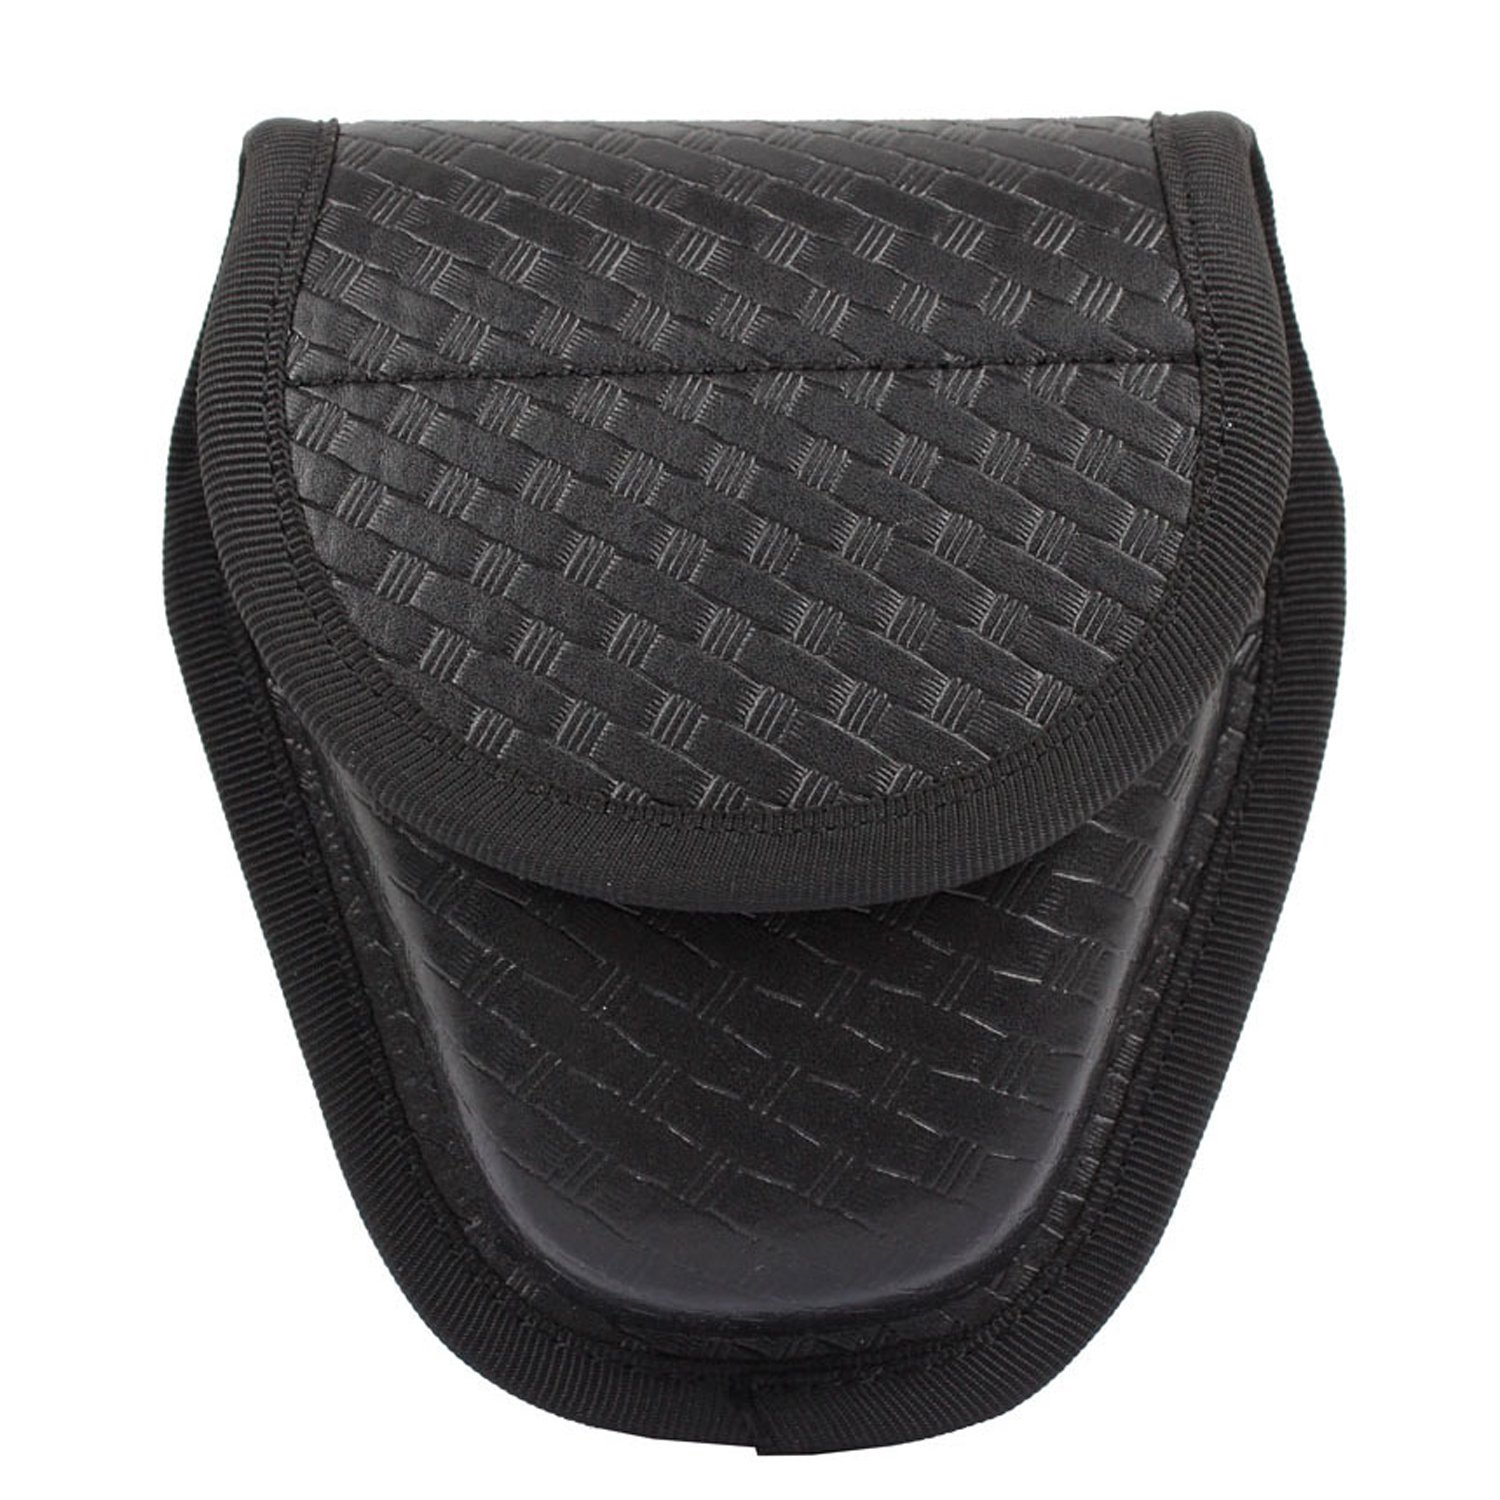 LytHarvest Double Basketweave Handcuff Case, Hidden Snap Handcuff Pouch by LytHarvest